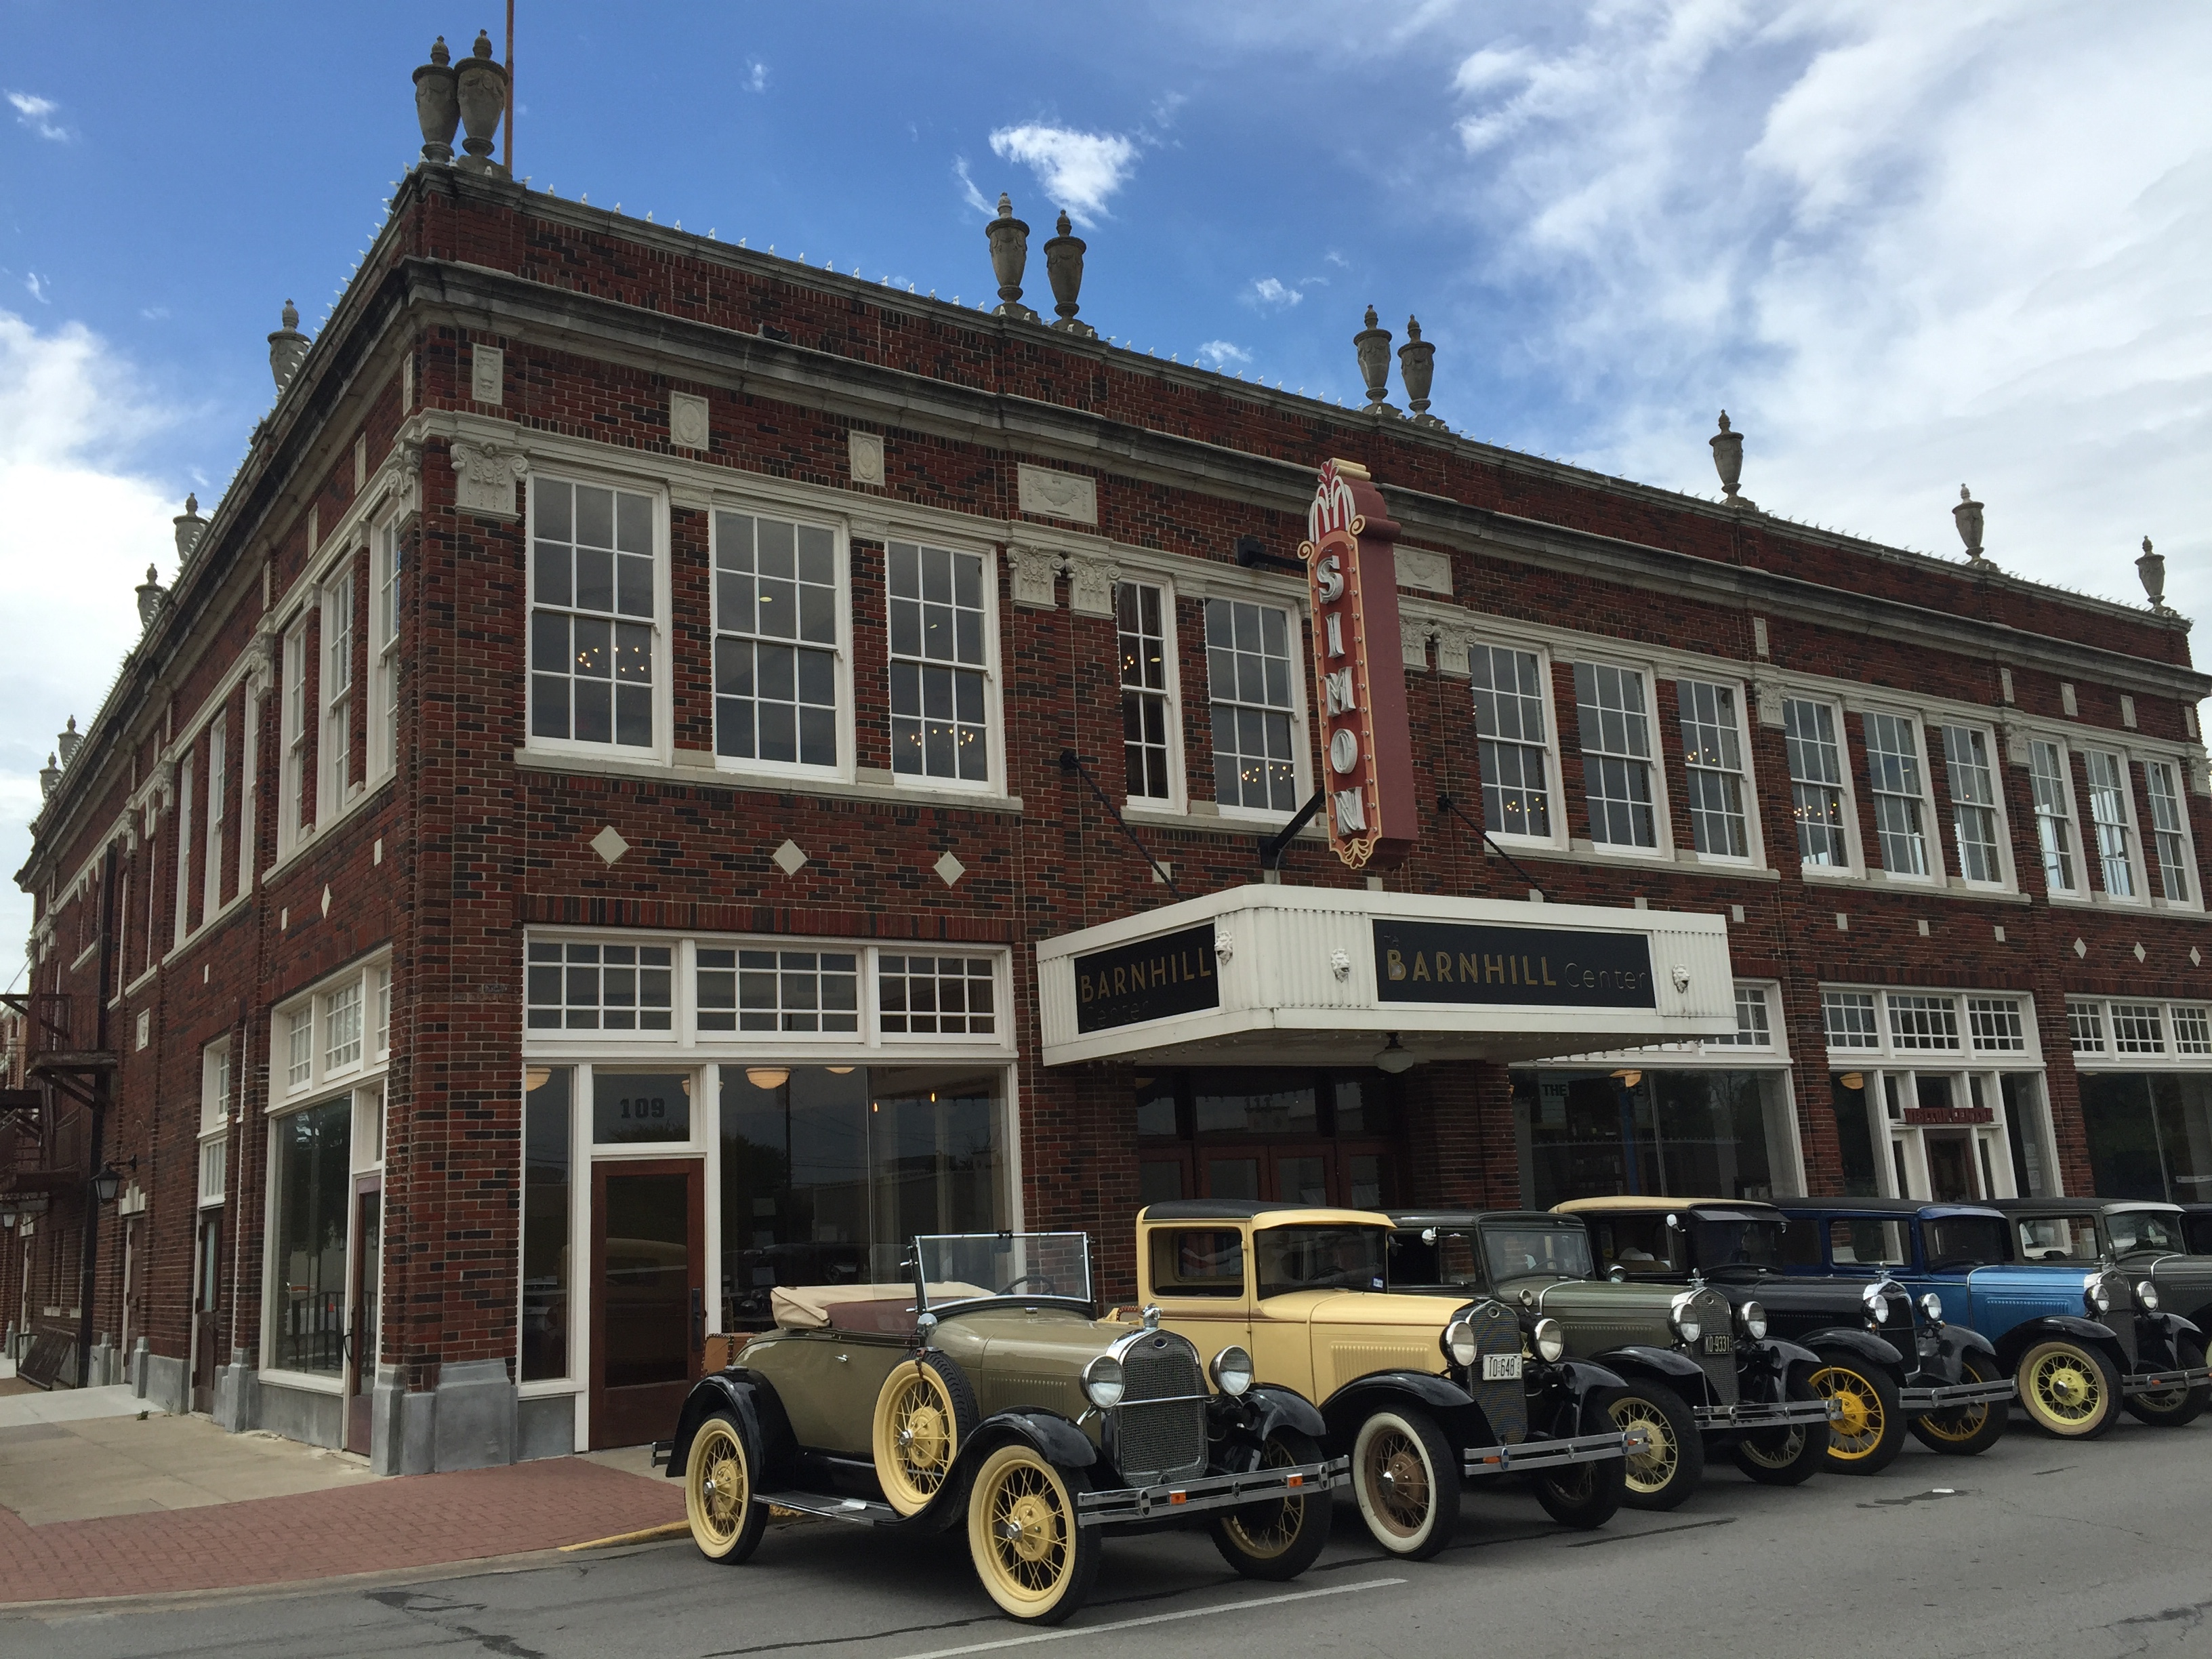 An exterior shot of the Barnhill Center features vintage cars parked in a row.